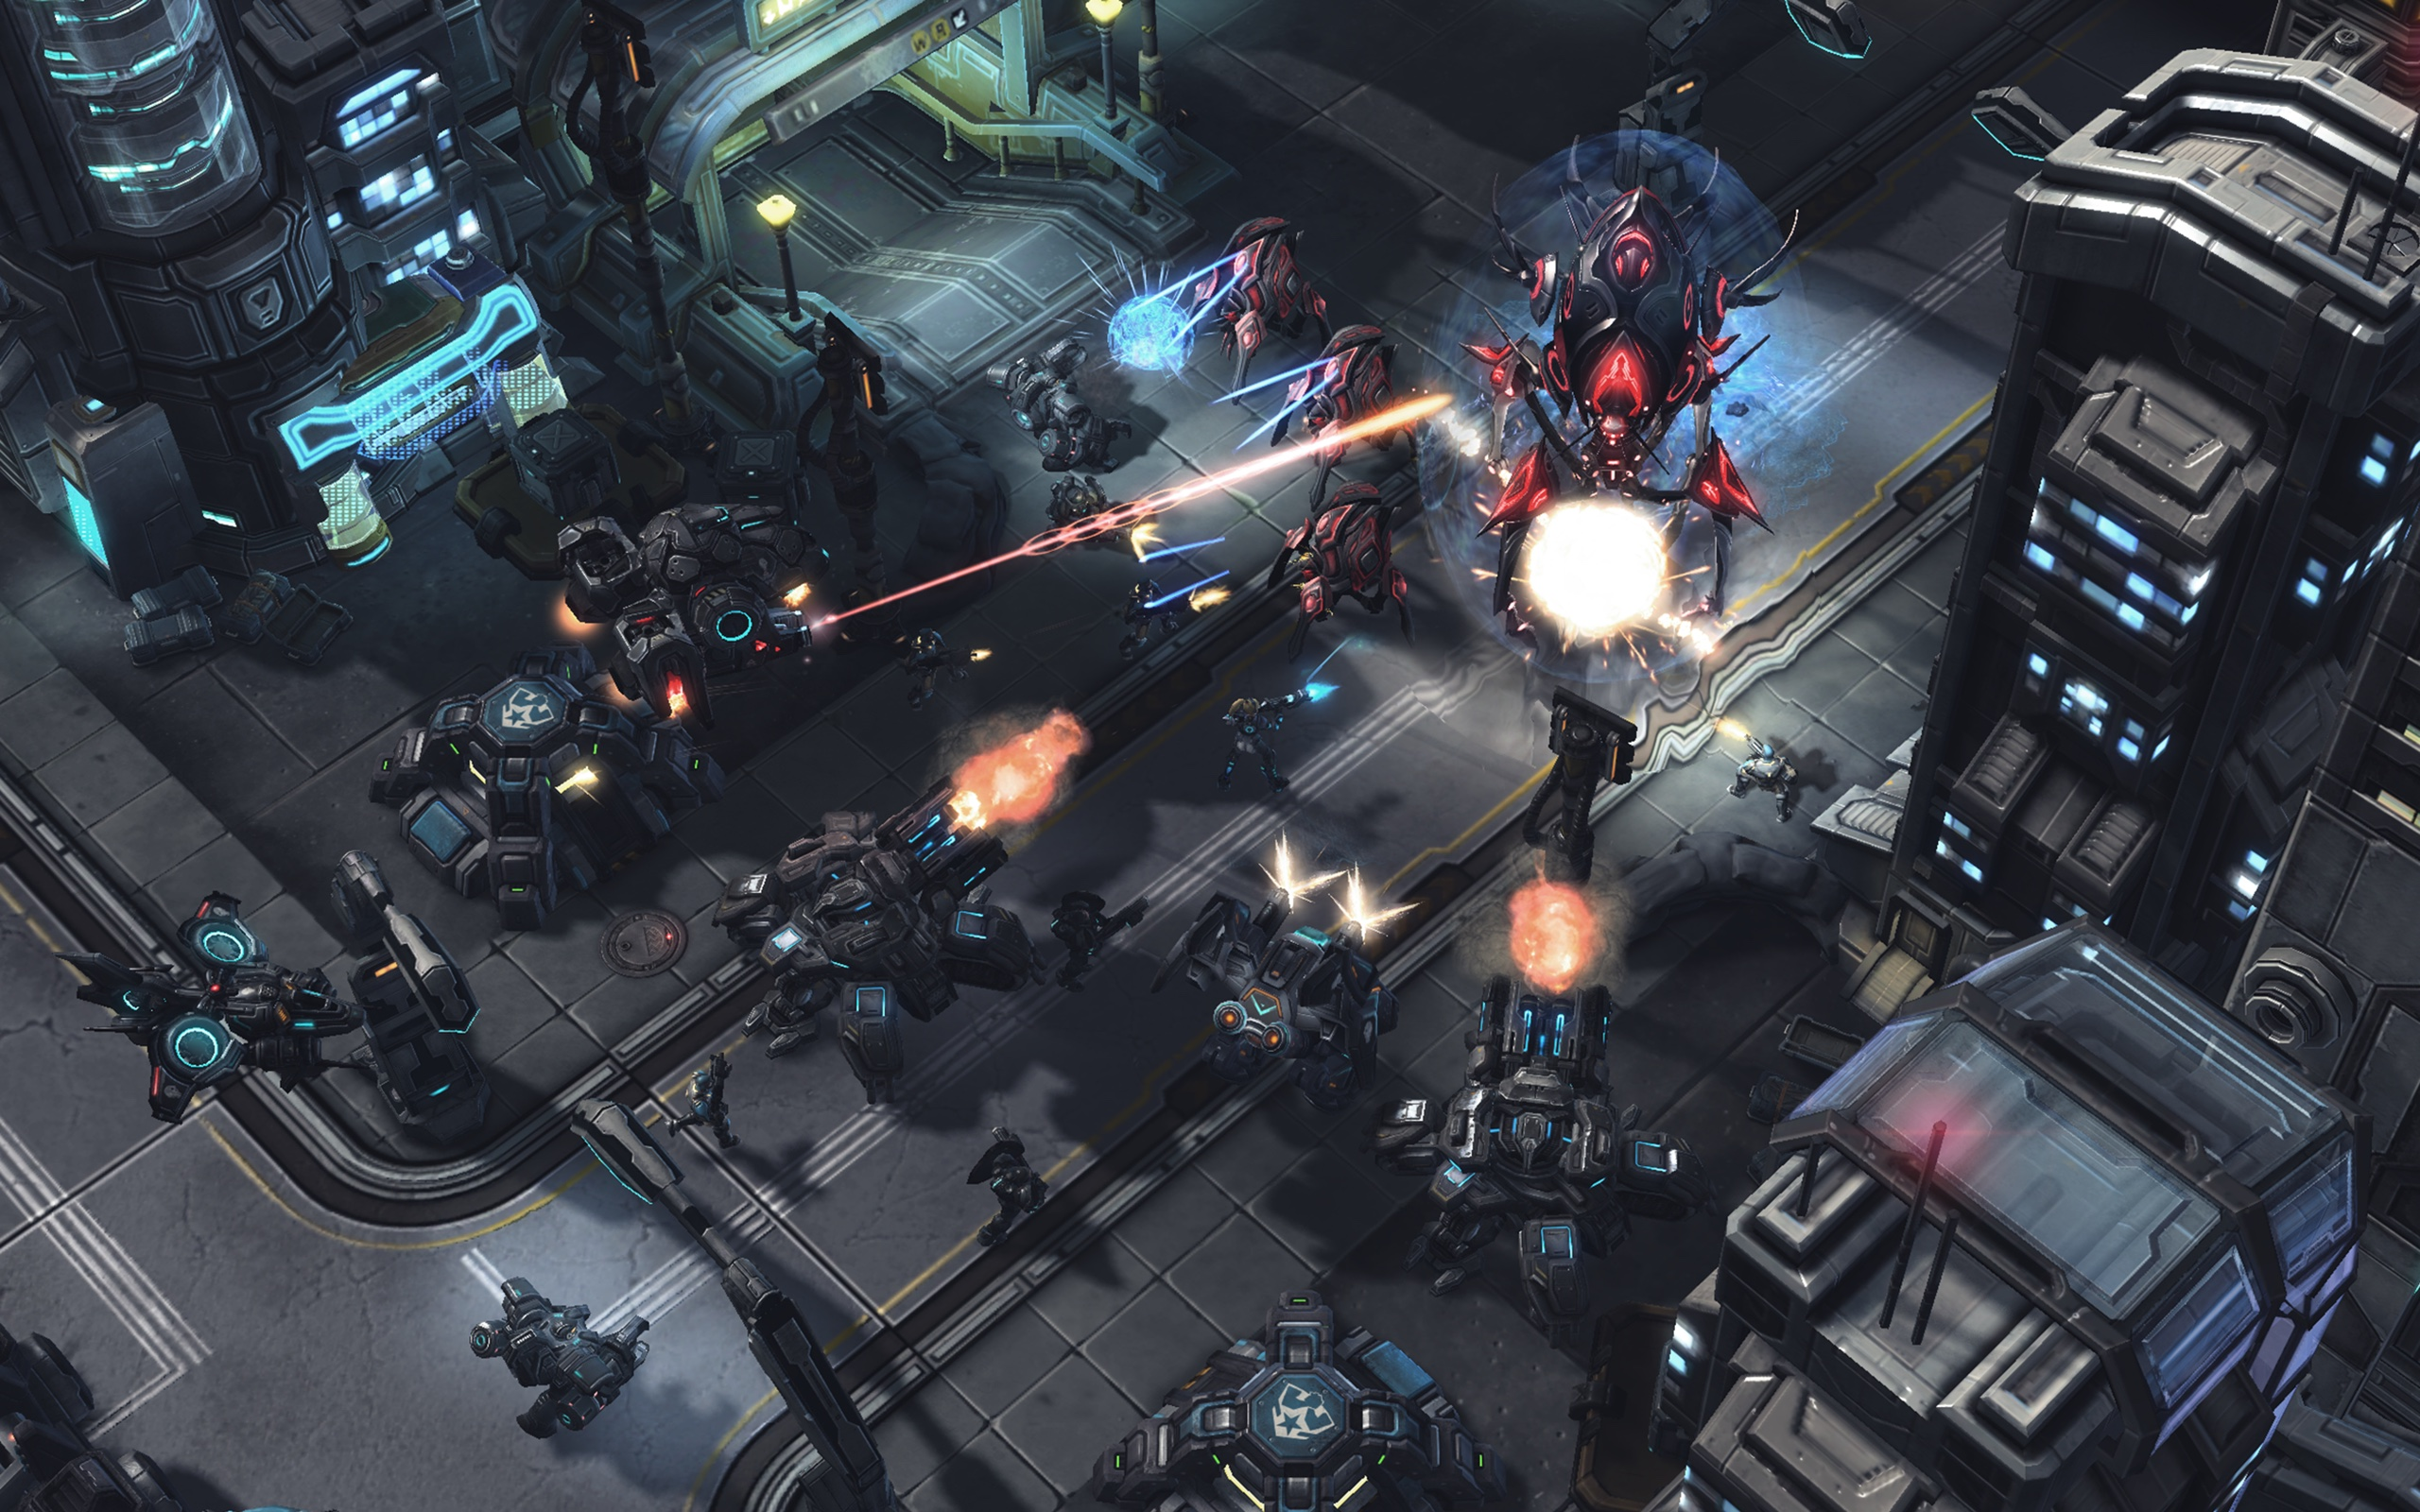 StarCraft II Going Free-To-Play Starting November 14